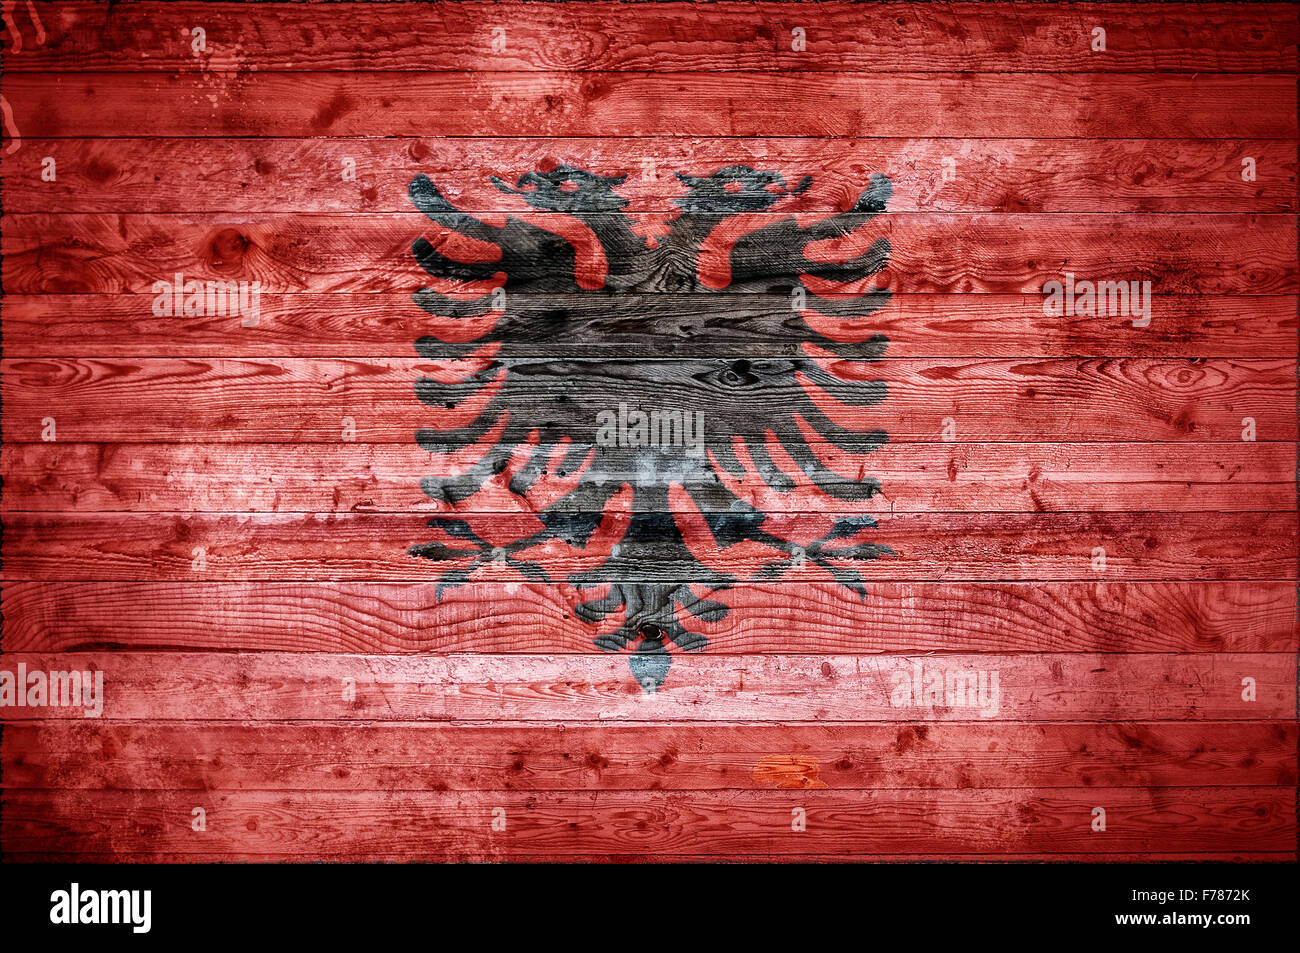 albania art stockfotos albania art bilder alamy. Black Bedroom Furniture Sets. Home Design Ideas